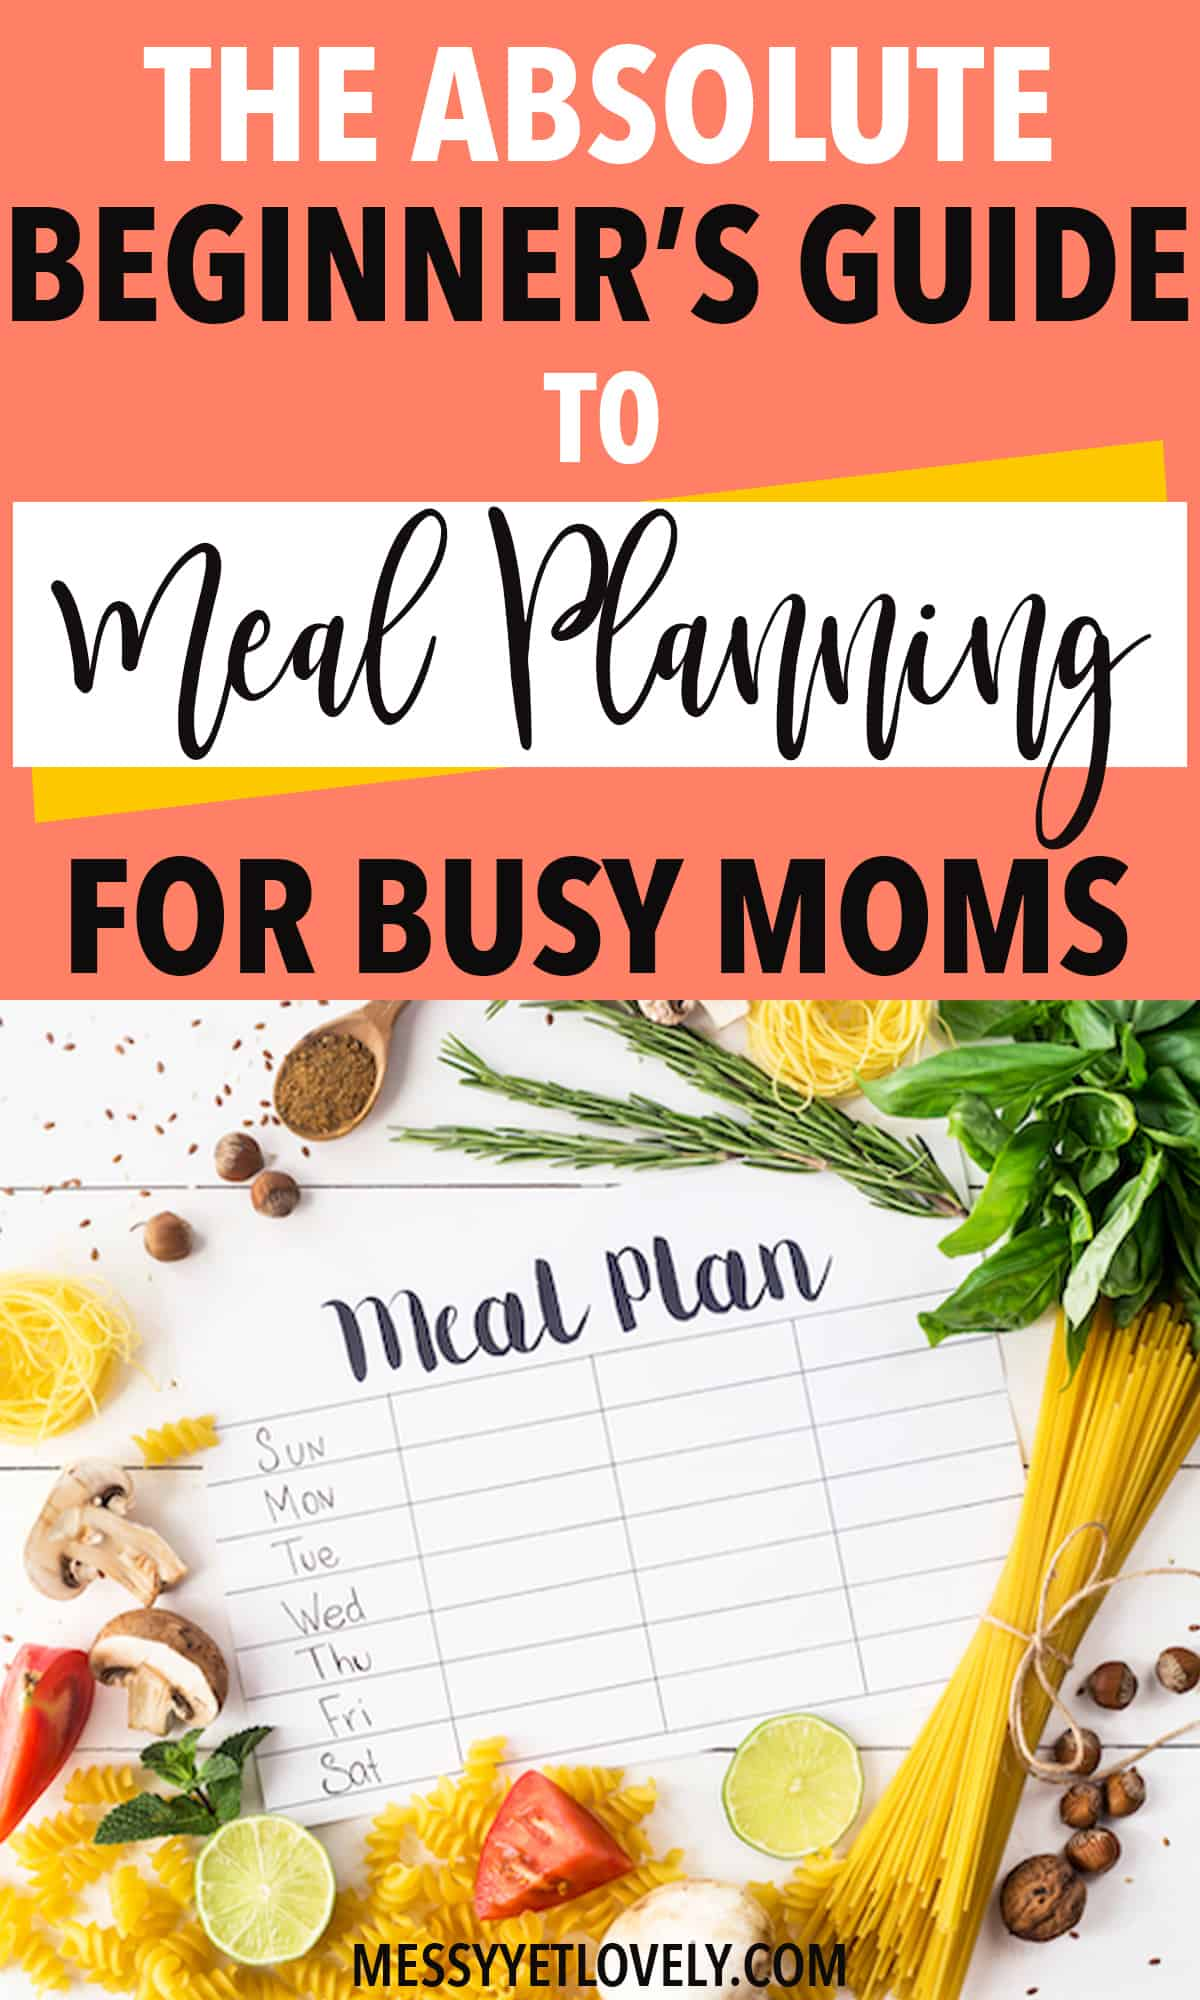 Getting started with meal planning can seem overwhelming when you have no idea where to start. This is a step-by-step guide for busy moms (or anyone) to get started with meal planning.